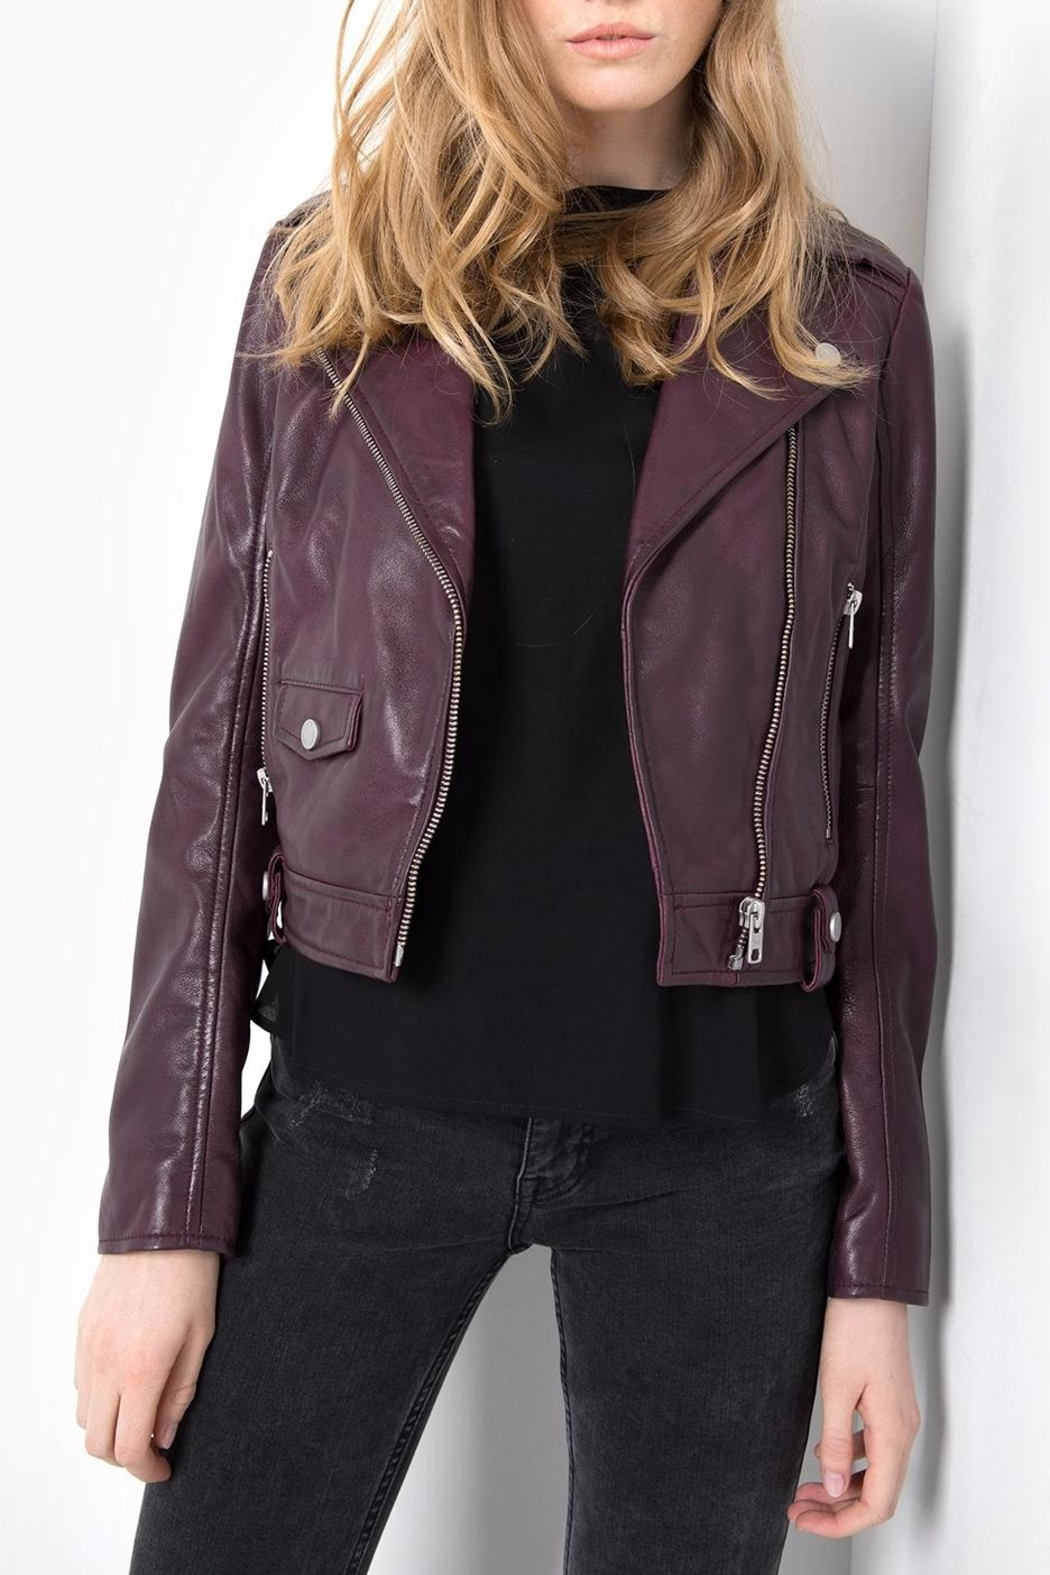 From China Cheap Price Free Shipping The Cheapest Leatherjacket Antoinette grey Tigha Buy Cheap Buy e4HFdkU4